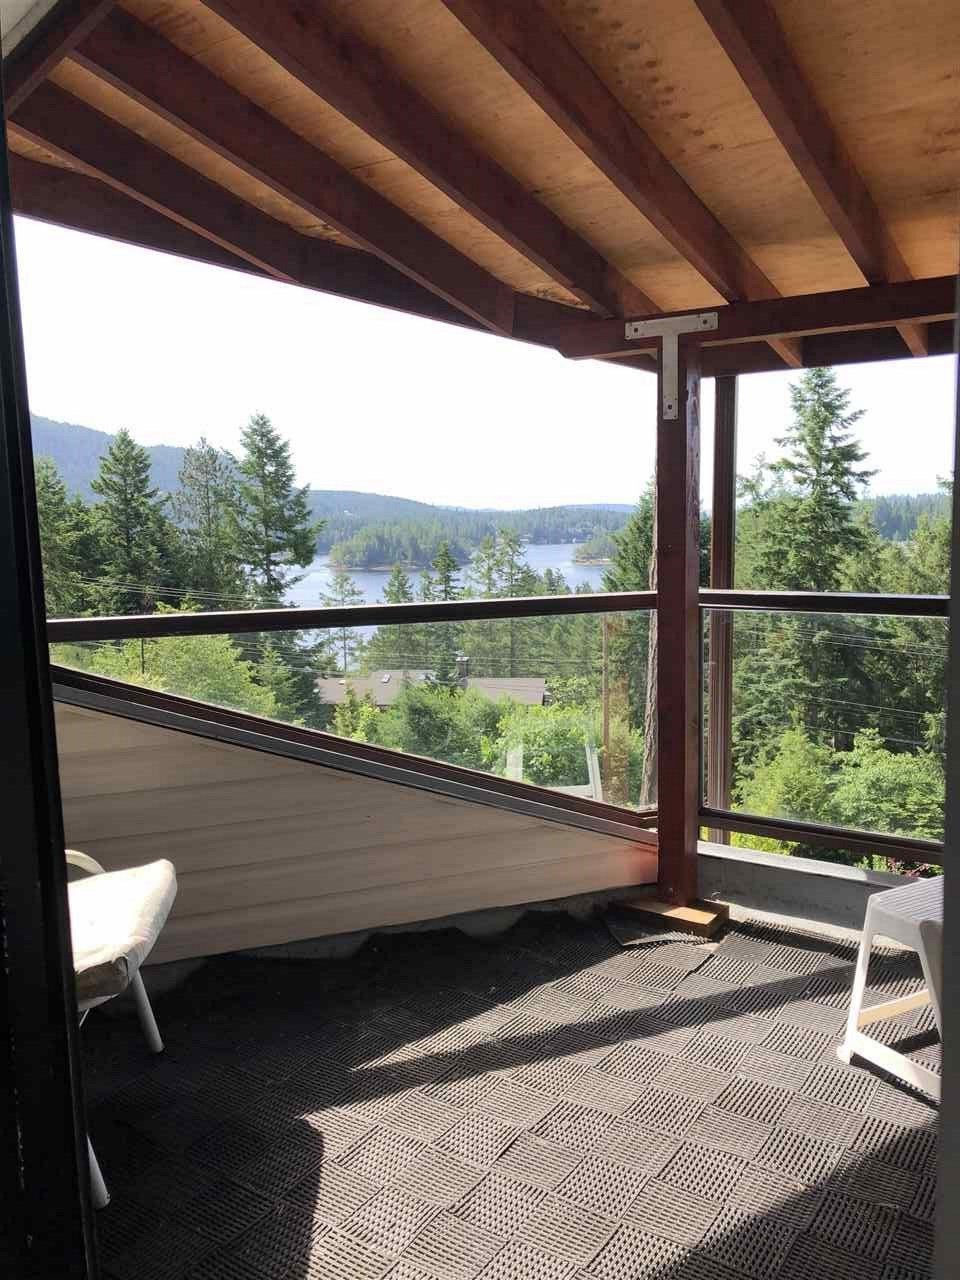 Photo 12: Photos: 4743 HOTEL LAKE Road in Garden Bay: Pender Harbour Egmont House for sale (Sunshine Coast)  : MLS®# R2424554